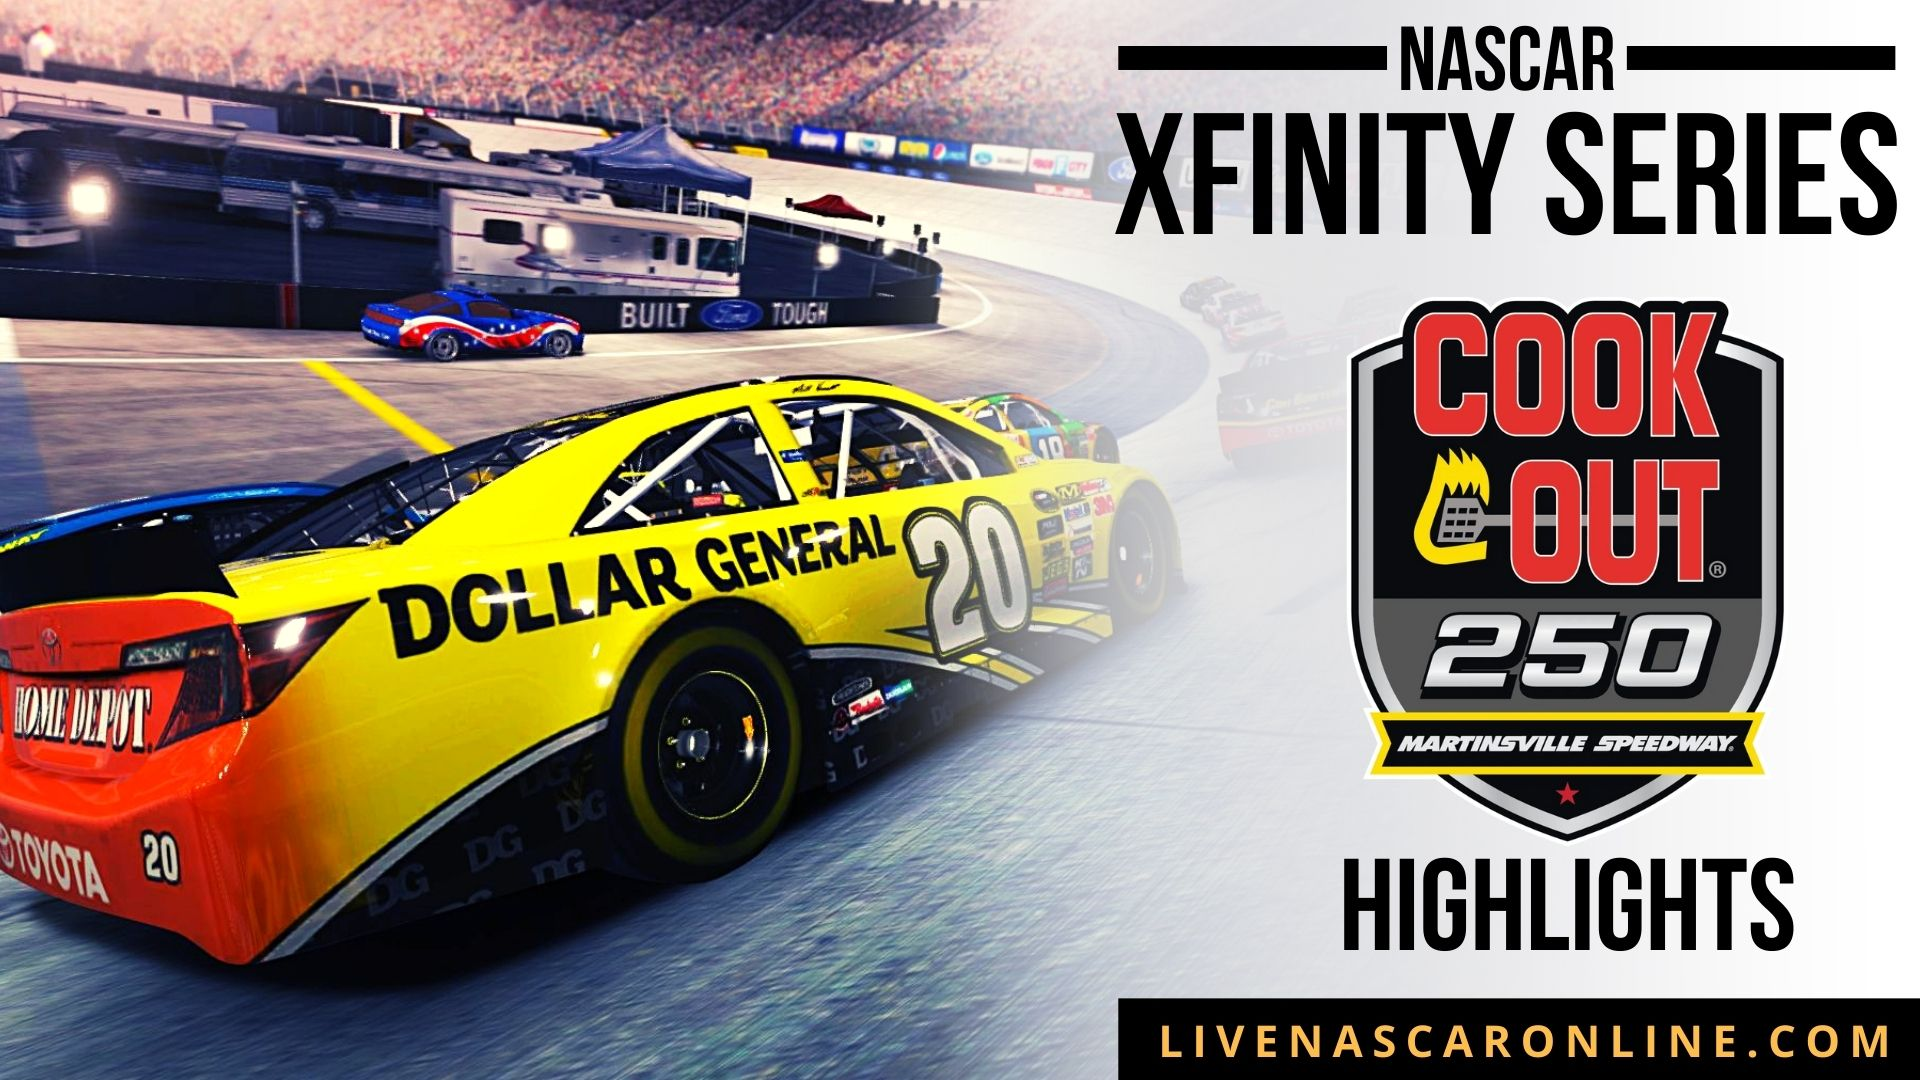 Cook Out 250 Highlights 2021 Nascar Xfinity Series